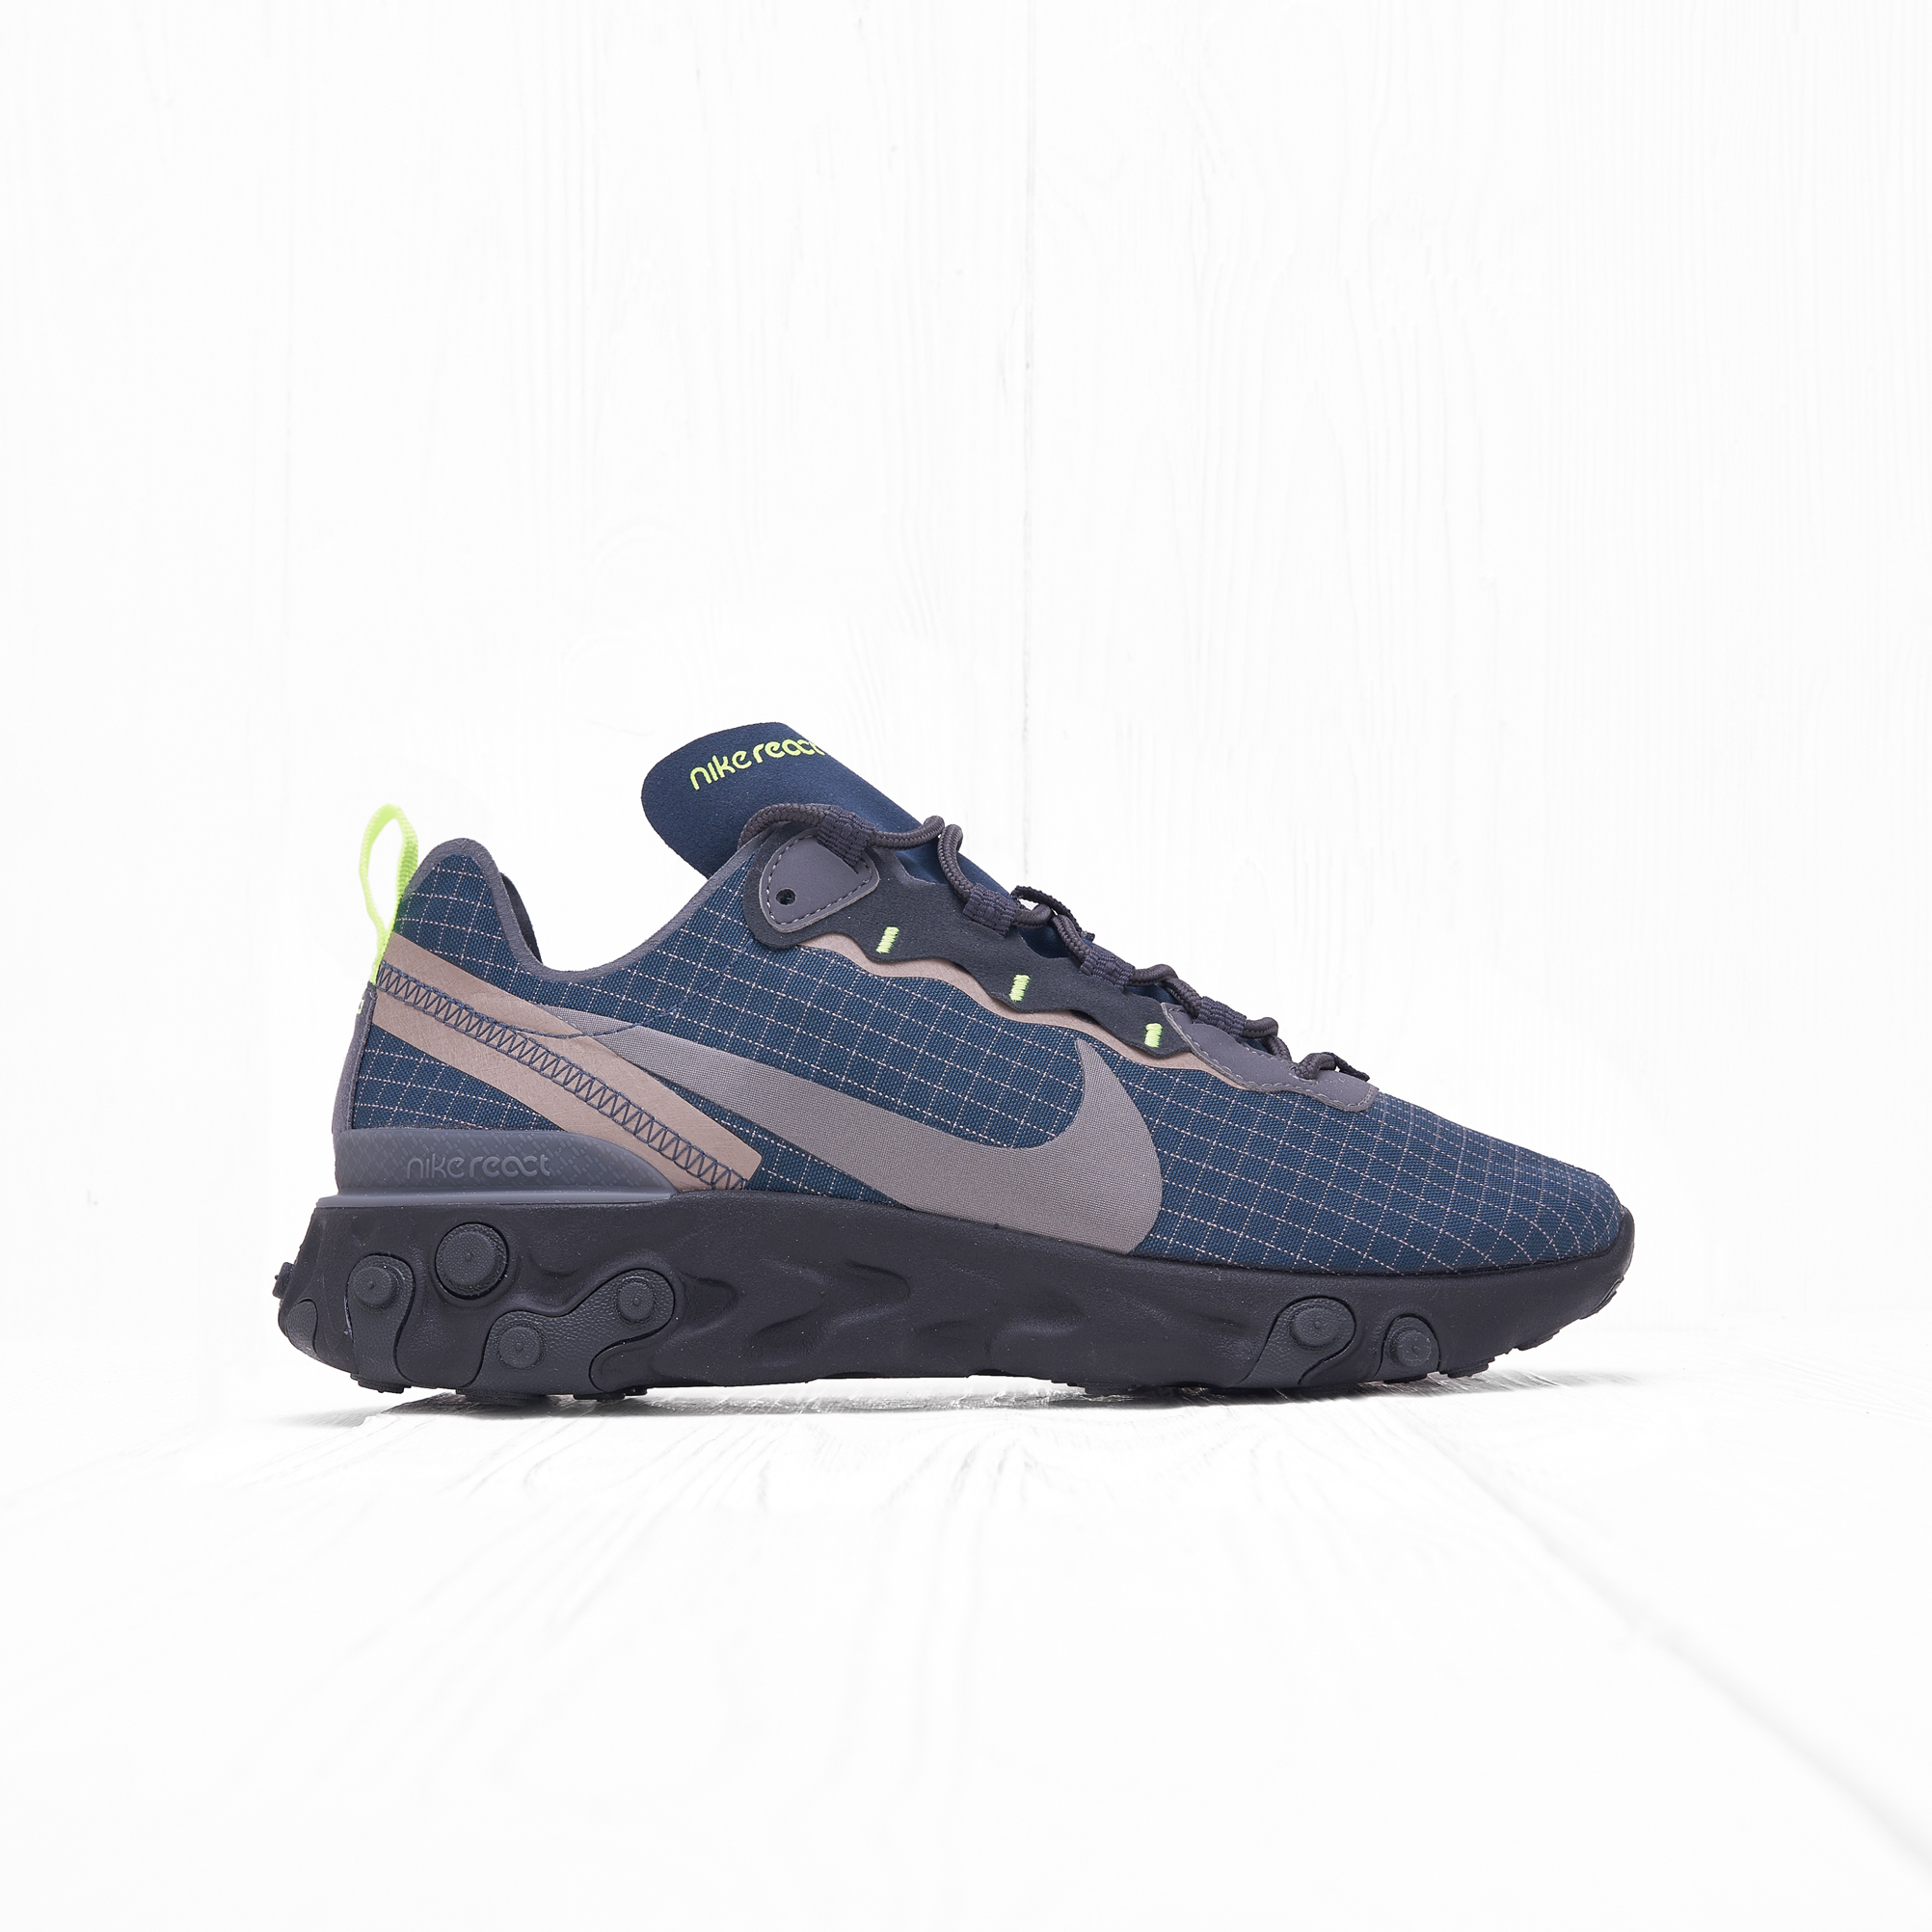 Кроссовки Nike REACT ELEMENT 55 Armory Navy/Metallic Dark Grey-Volt